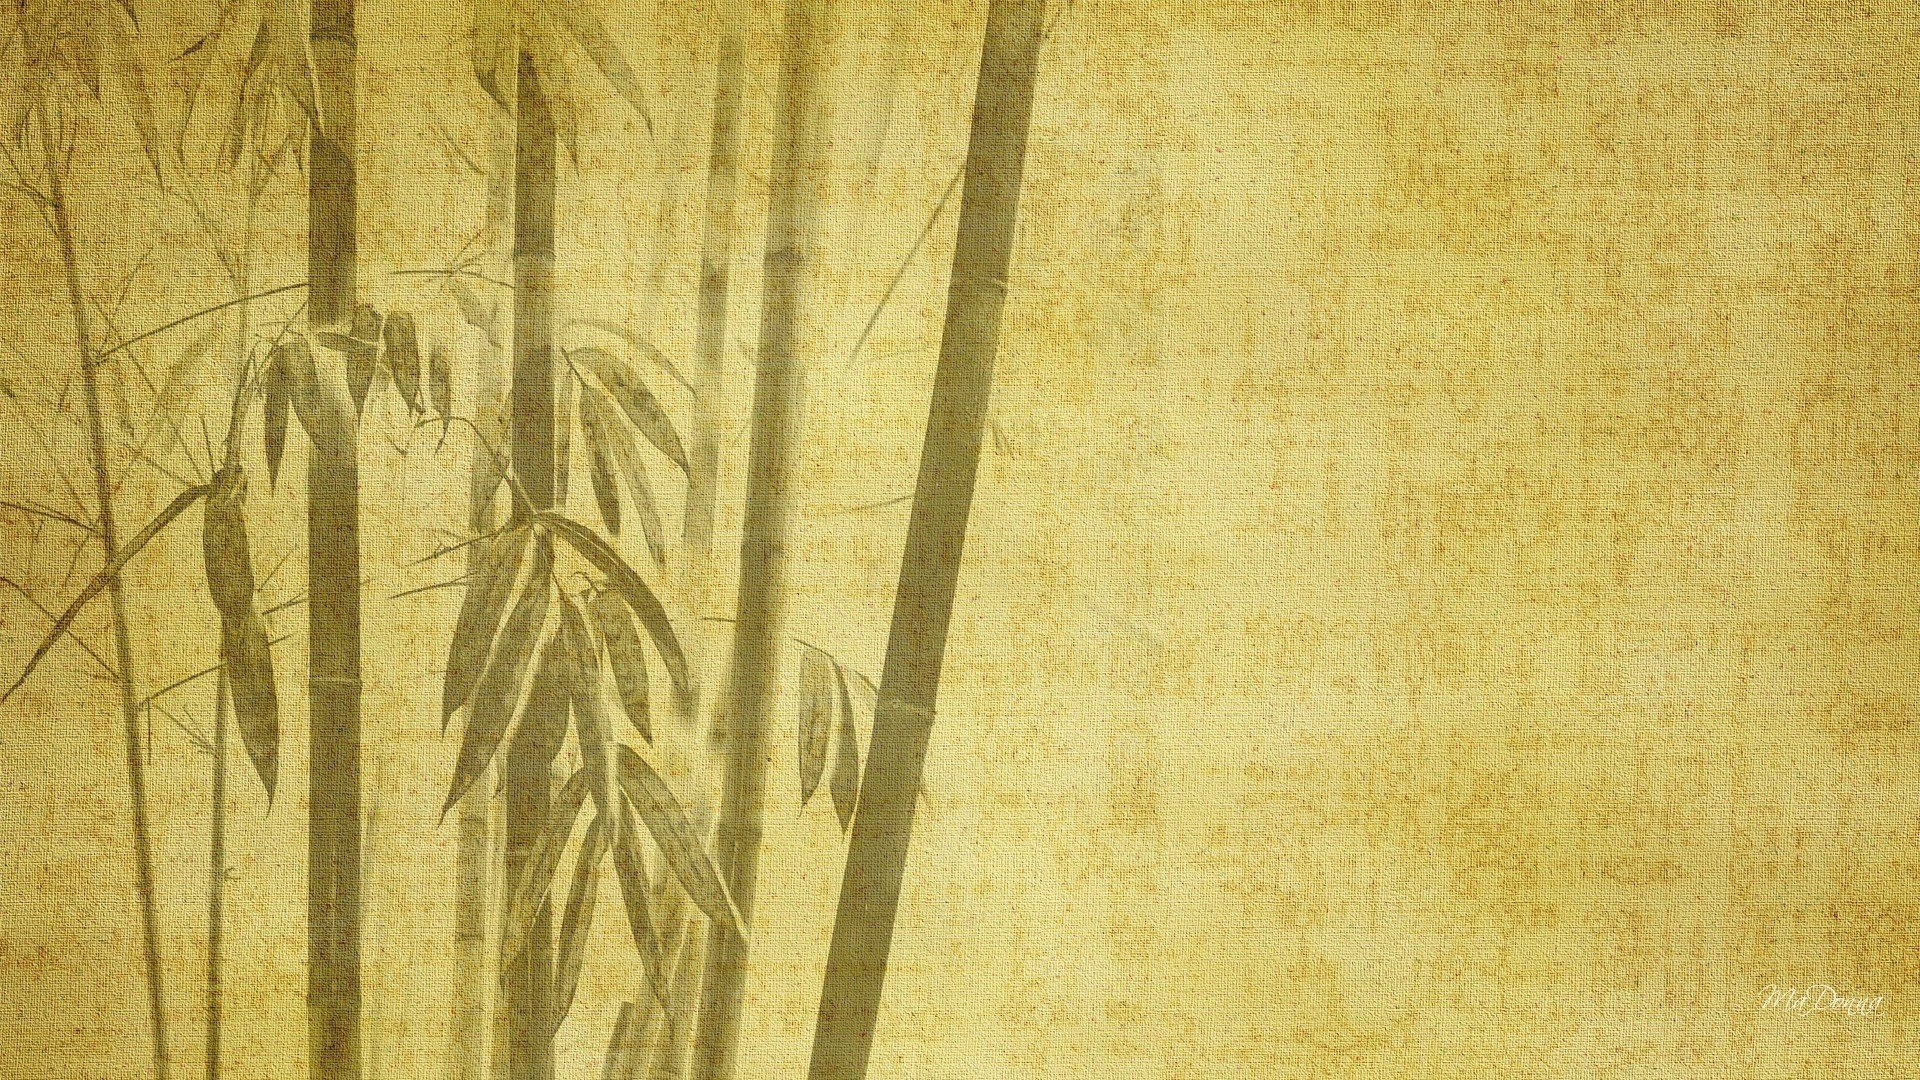 abstract backgrounds wallpaper bamboo - photo #14